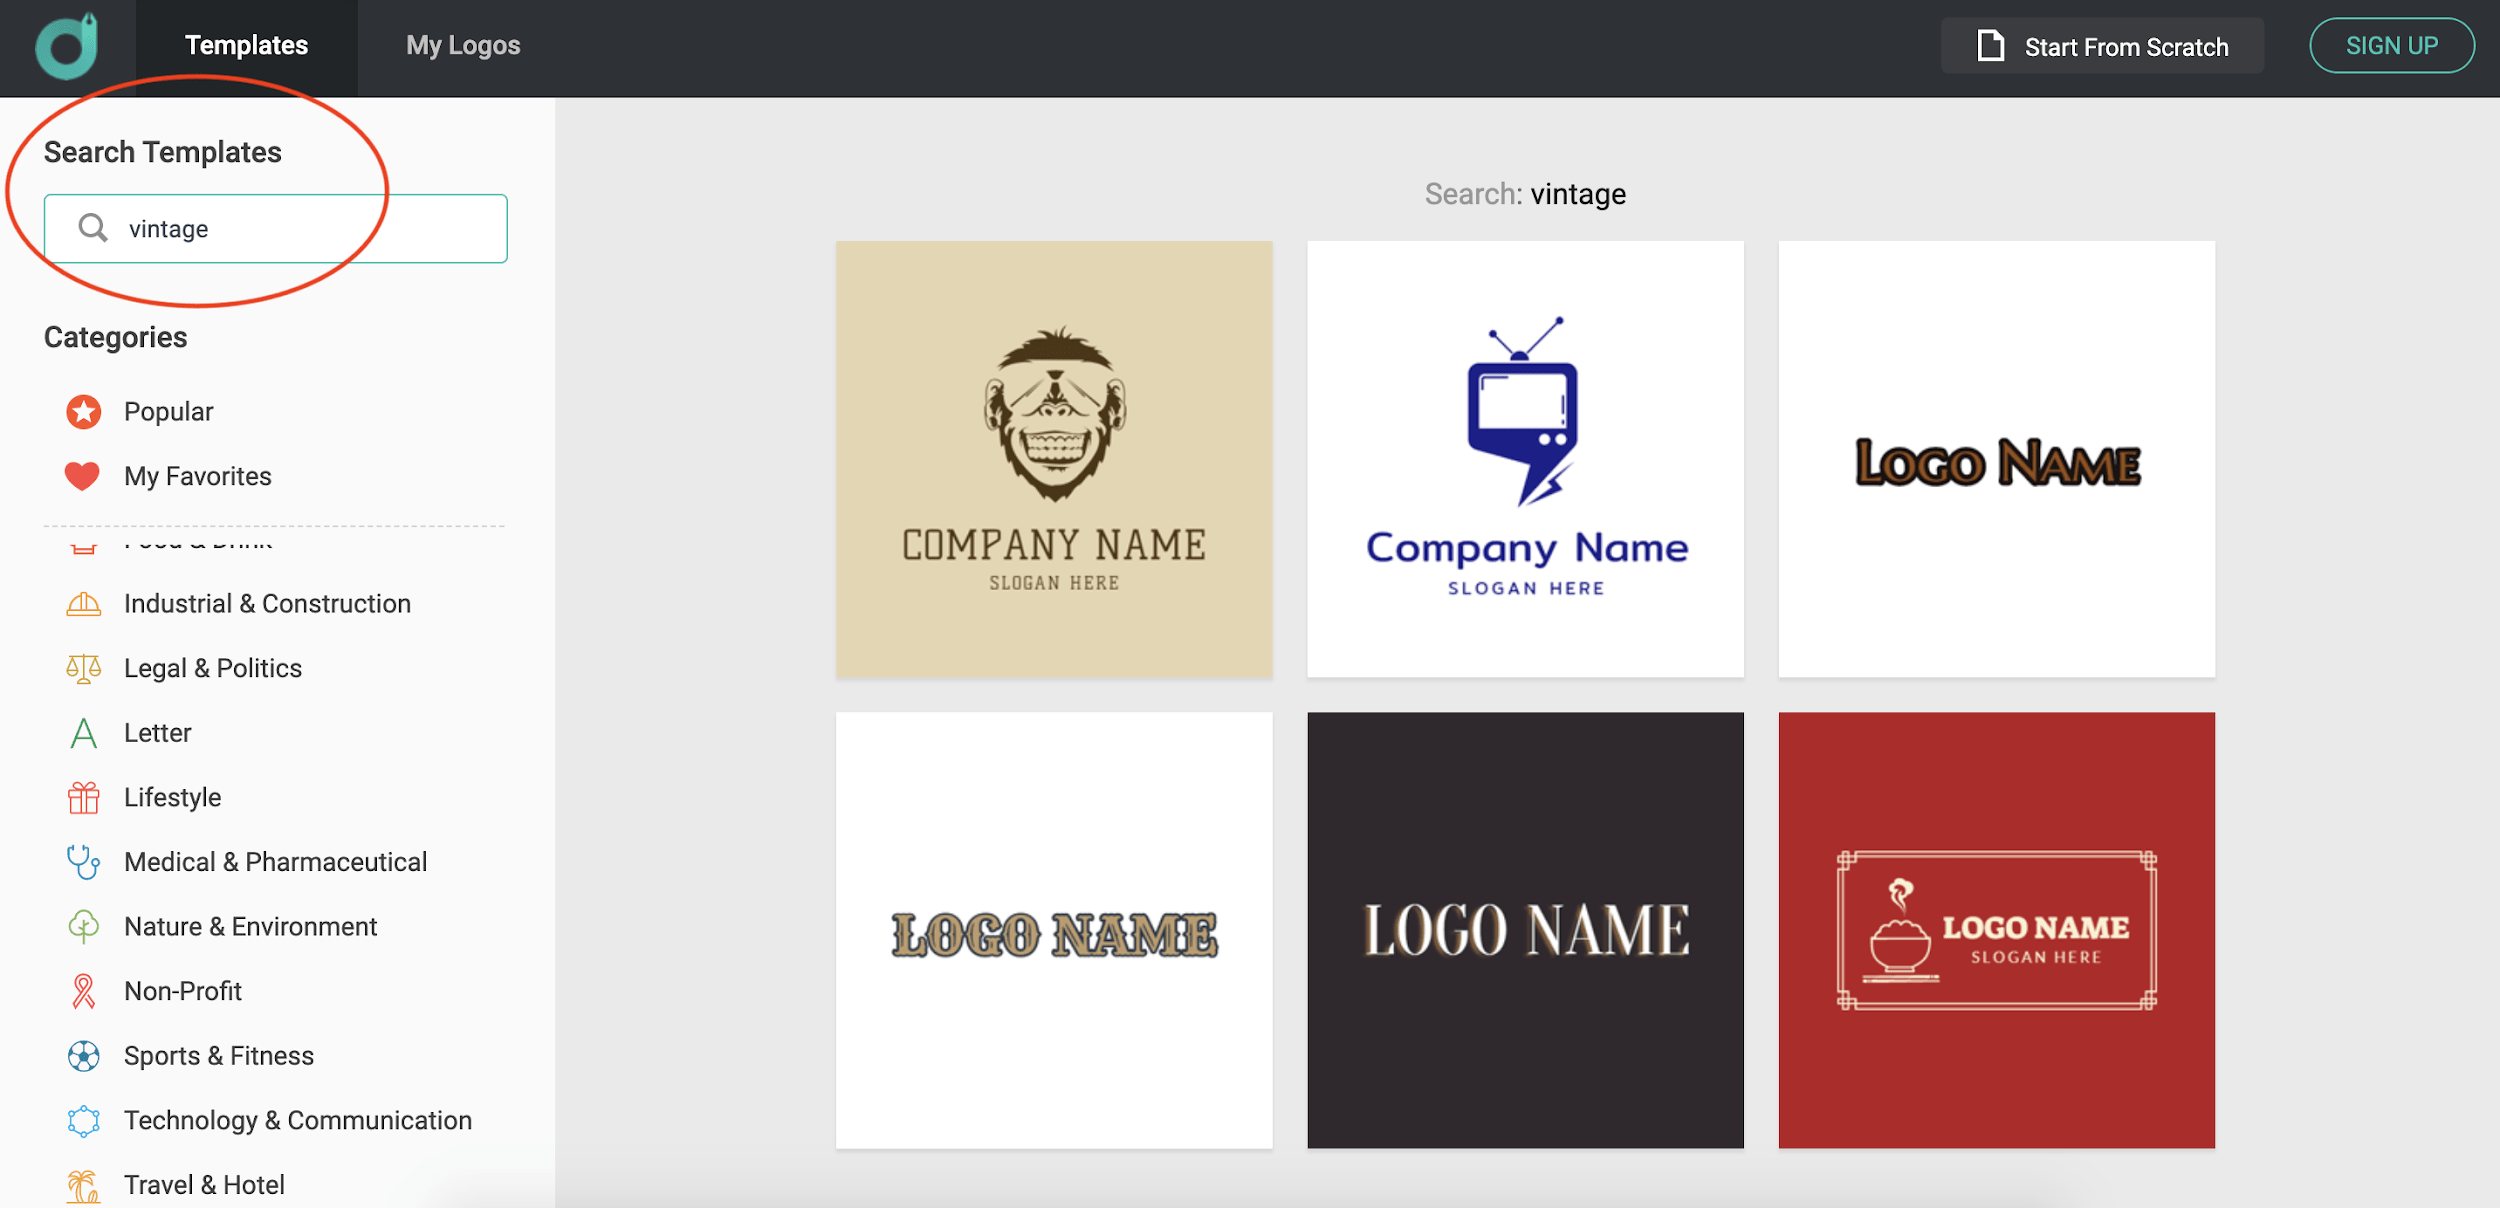 DesignEvo screenshot - Vintage logo templates